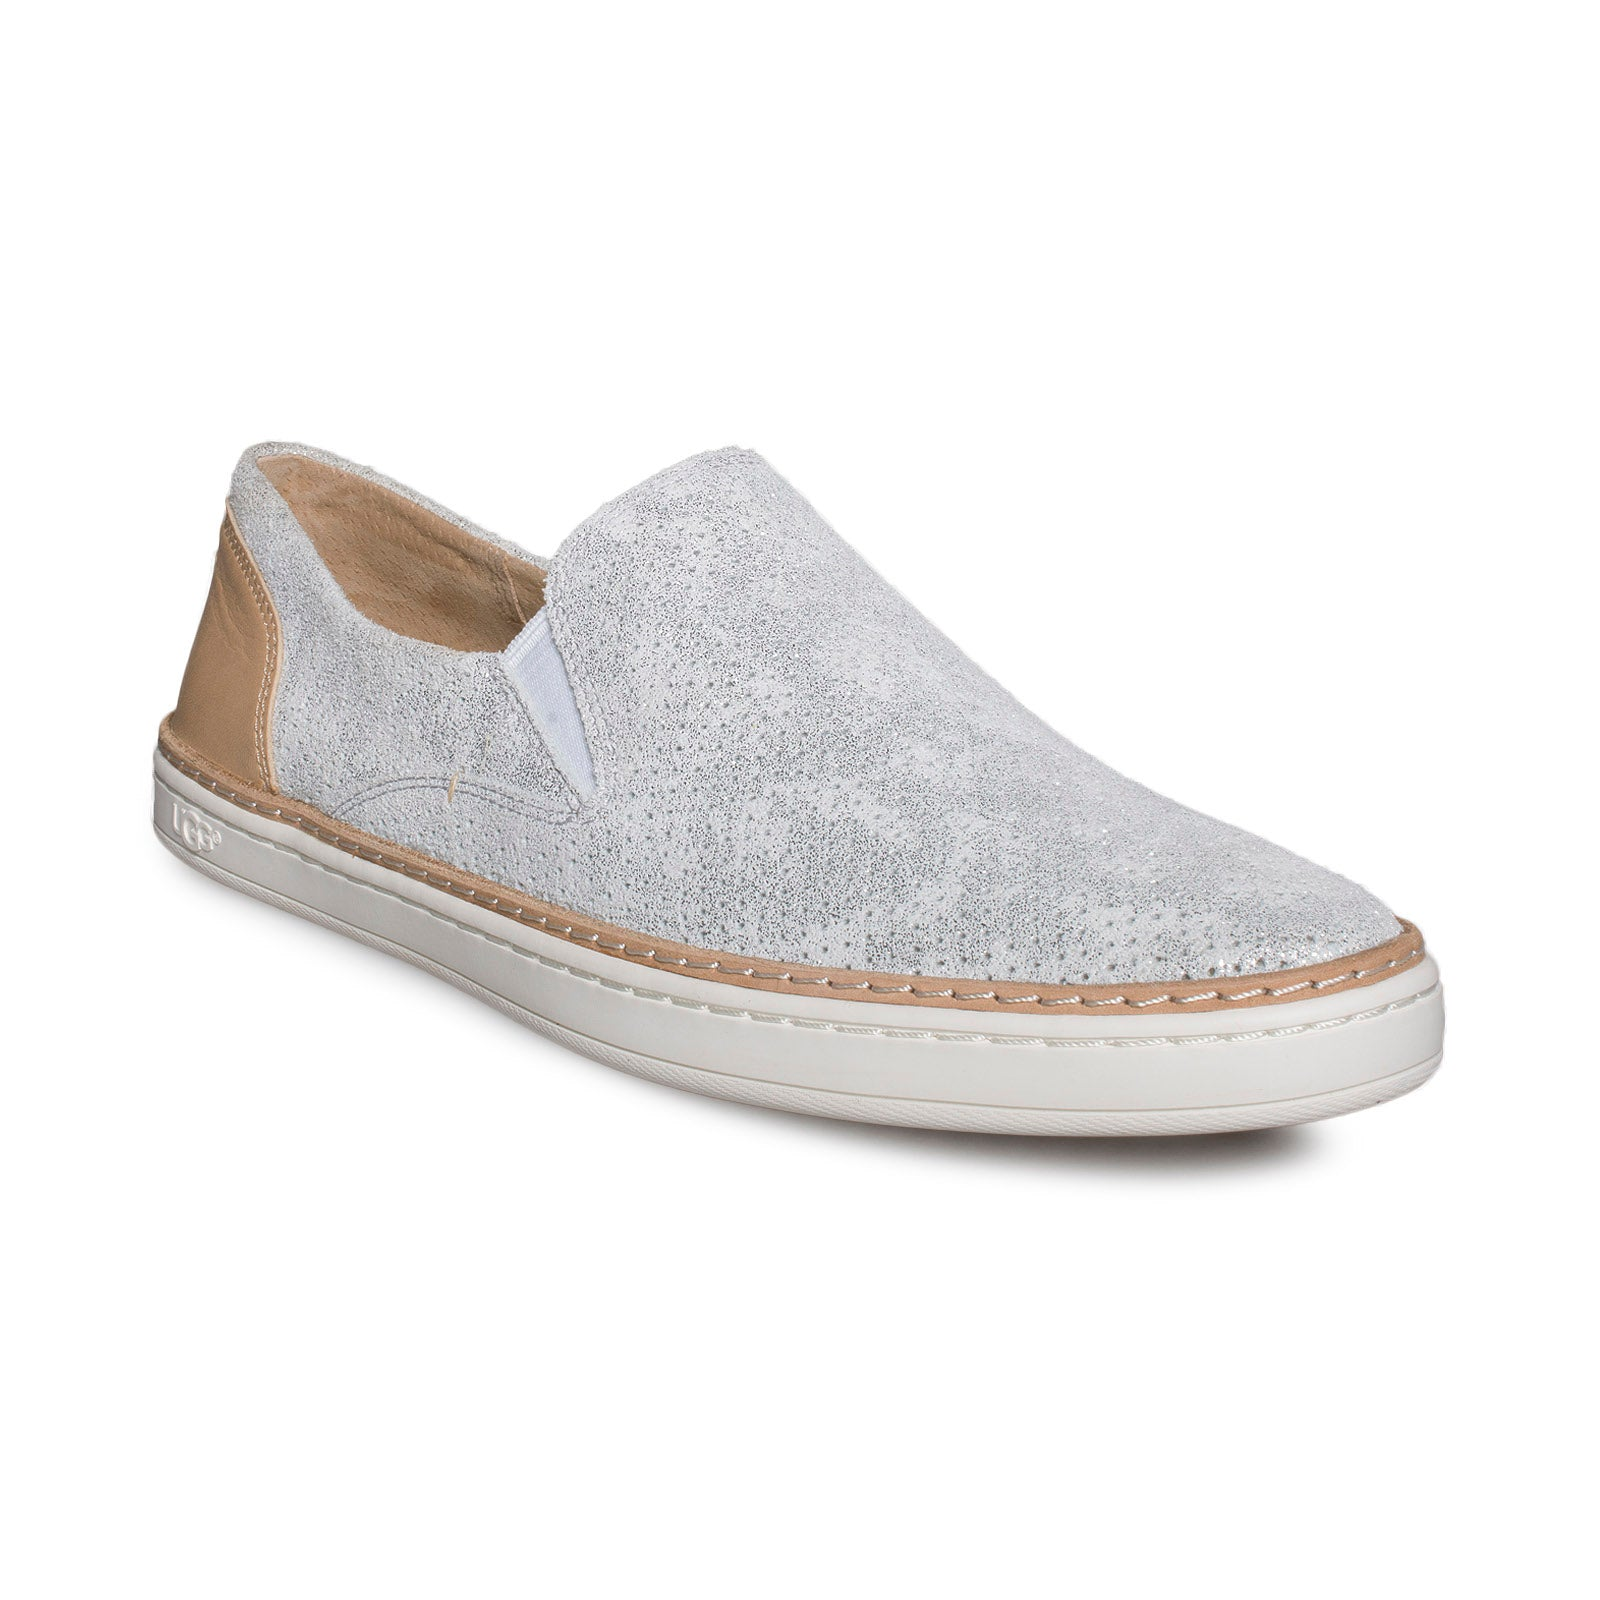 UGG Adley Perf Stardust Silver Shoes